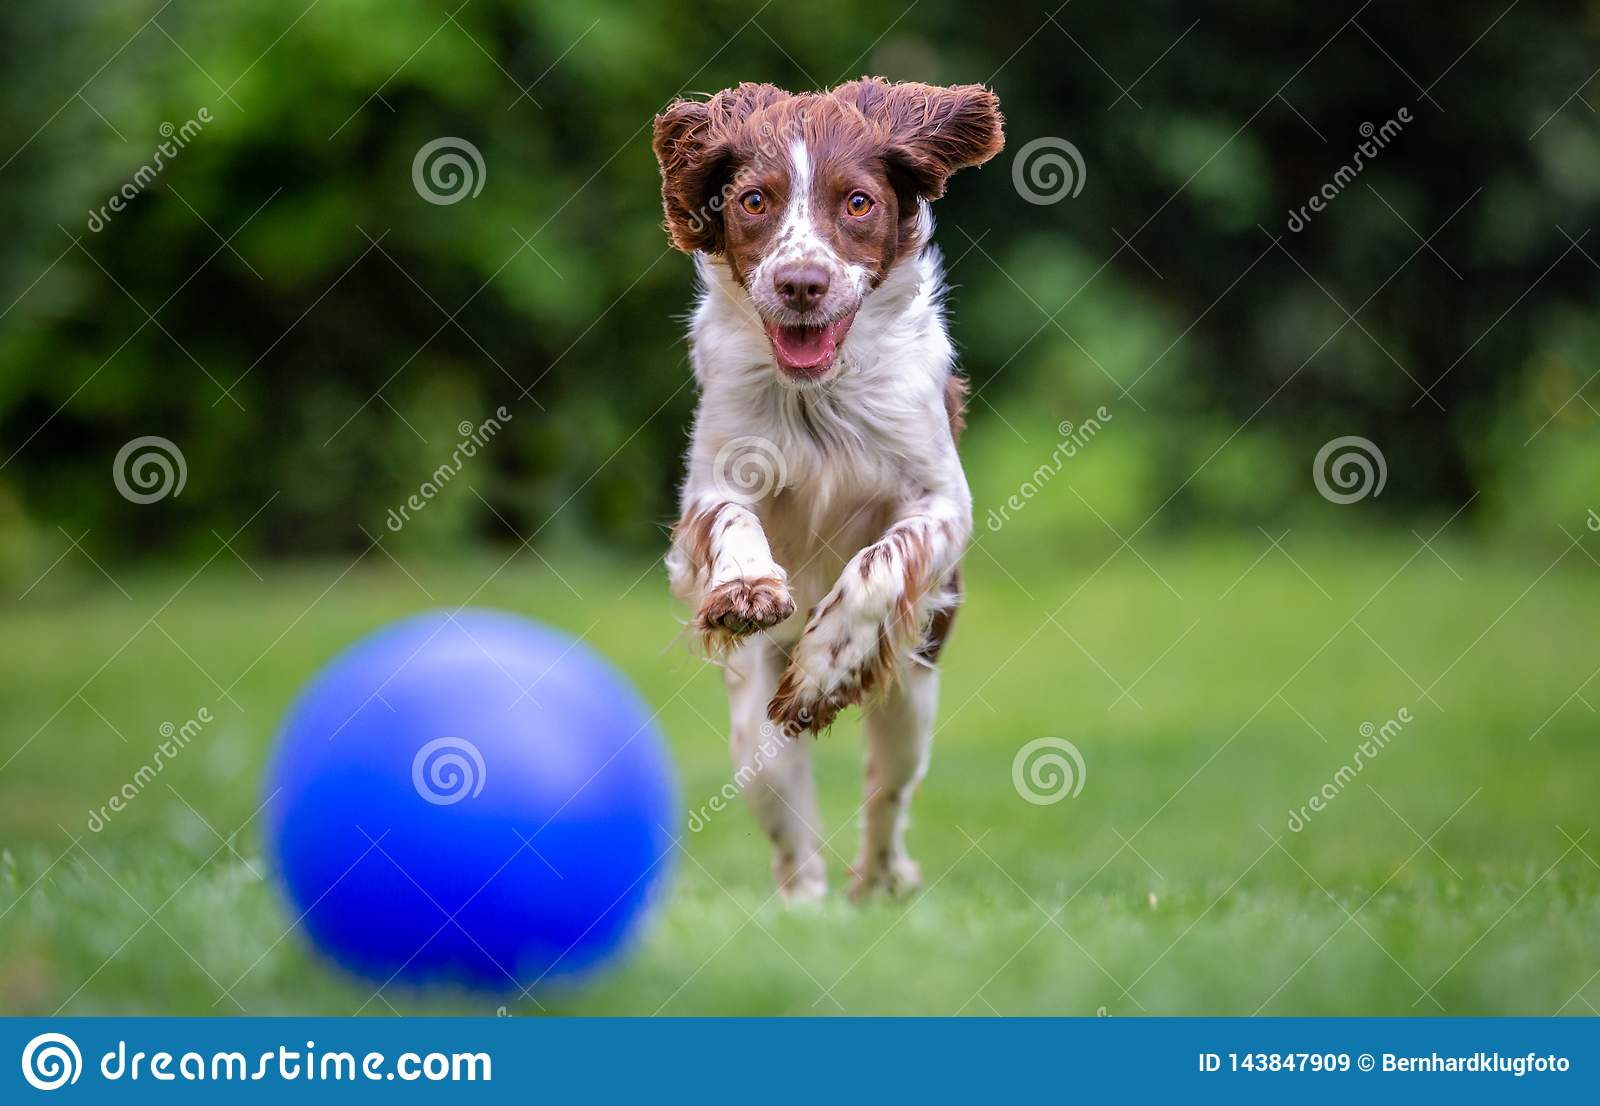 Young Springer Spaniel chasing a blue ball